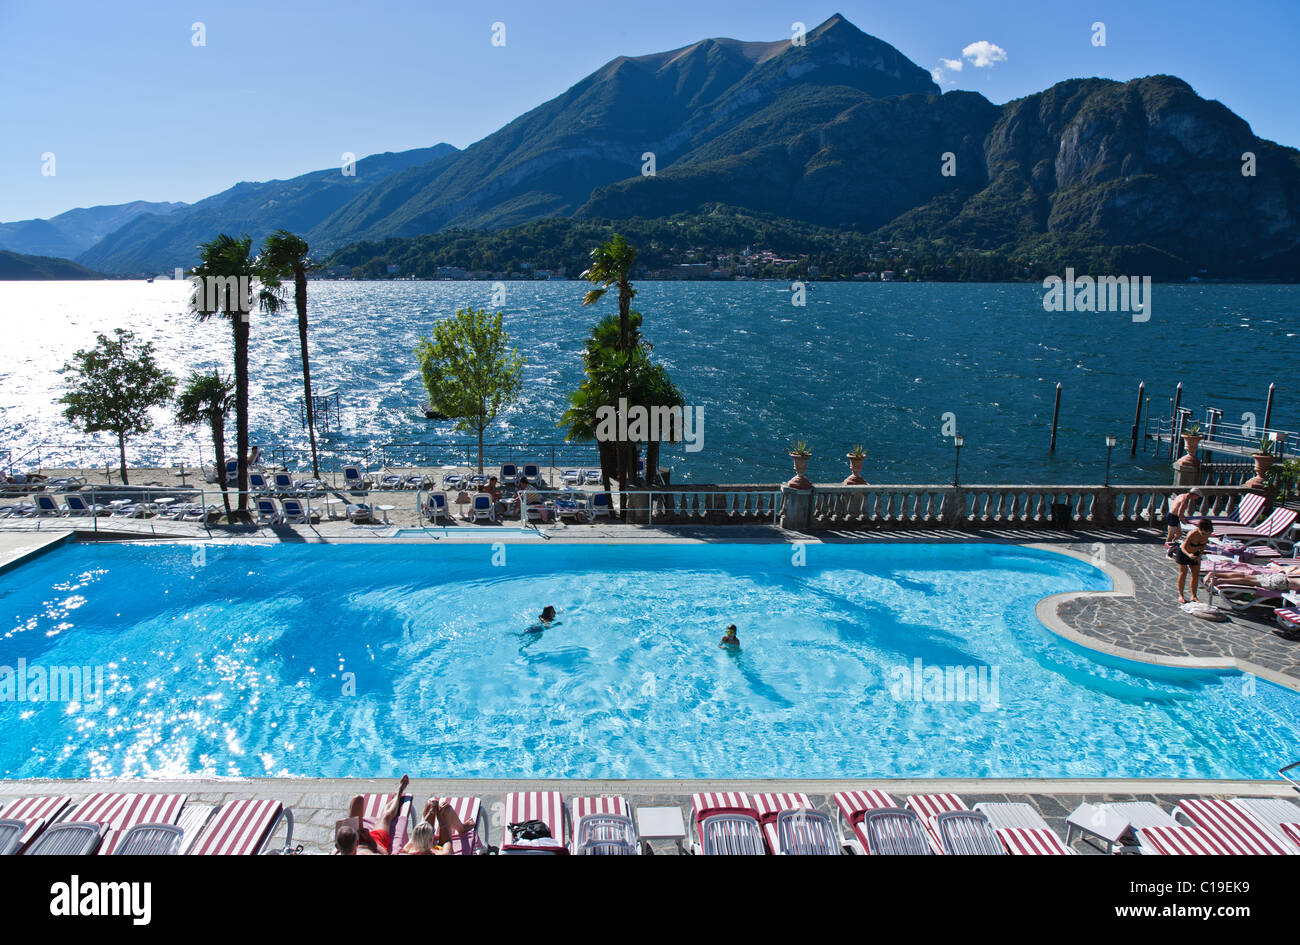 Italy como lake a bellagio 39 s hotel swimming pool stock photo royalty free image 35244477 alamy for Hotels in bologna italy with swimming pool